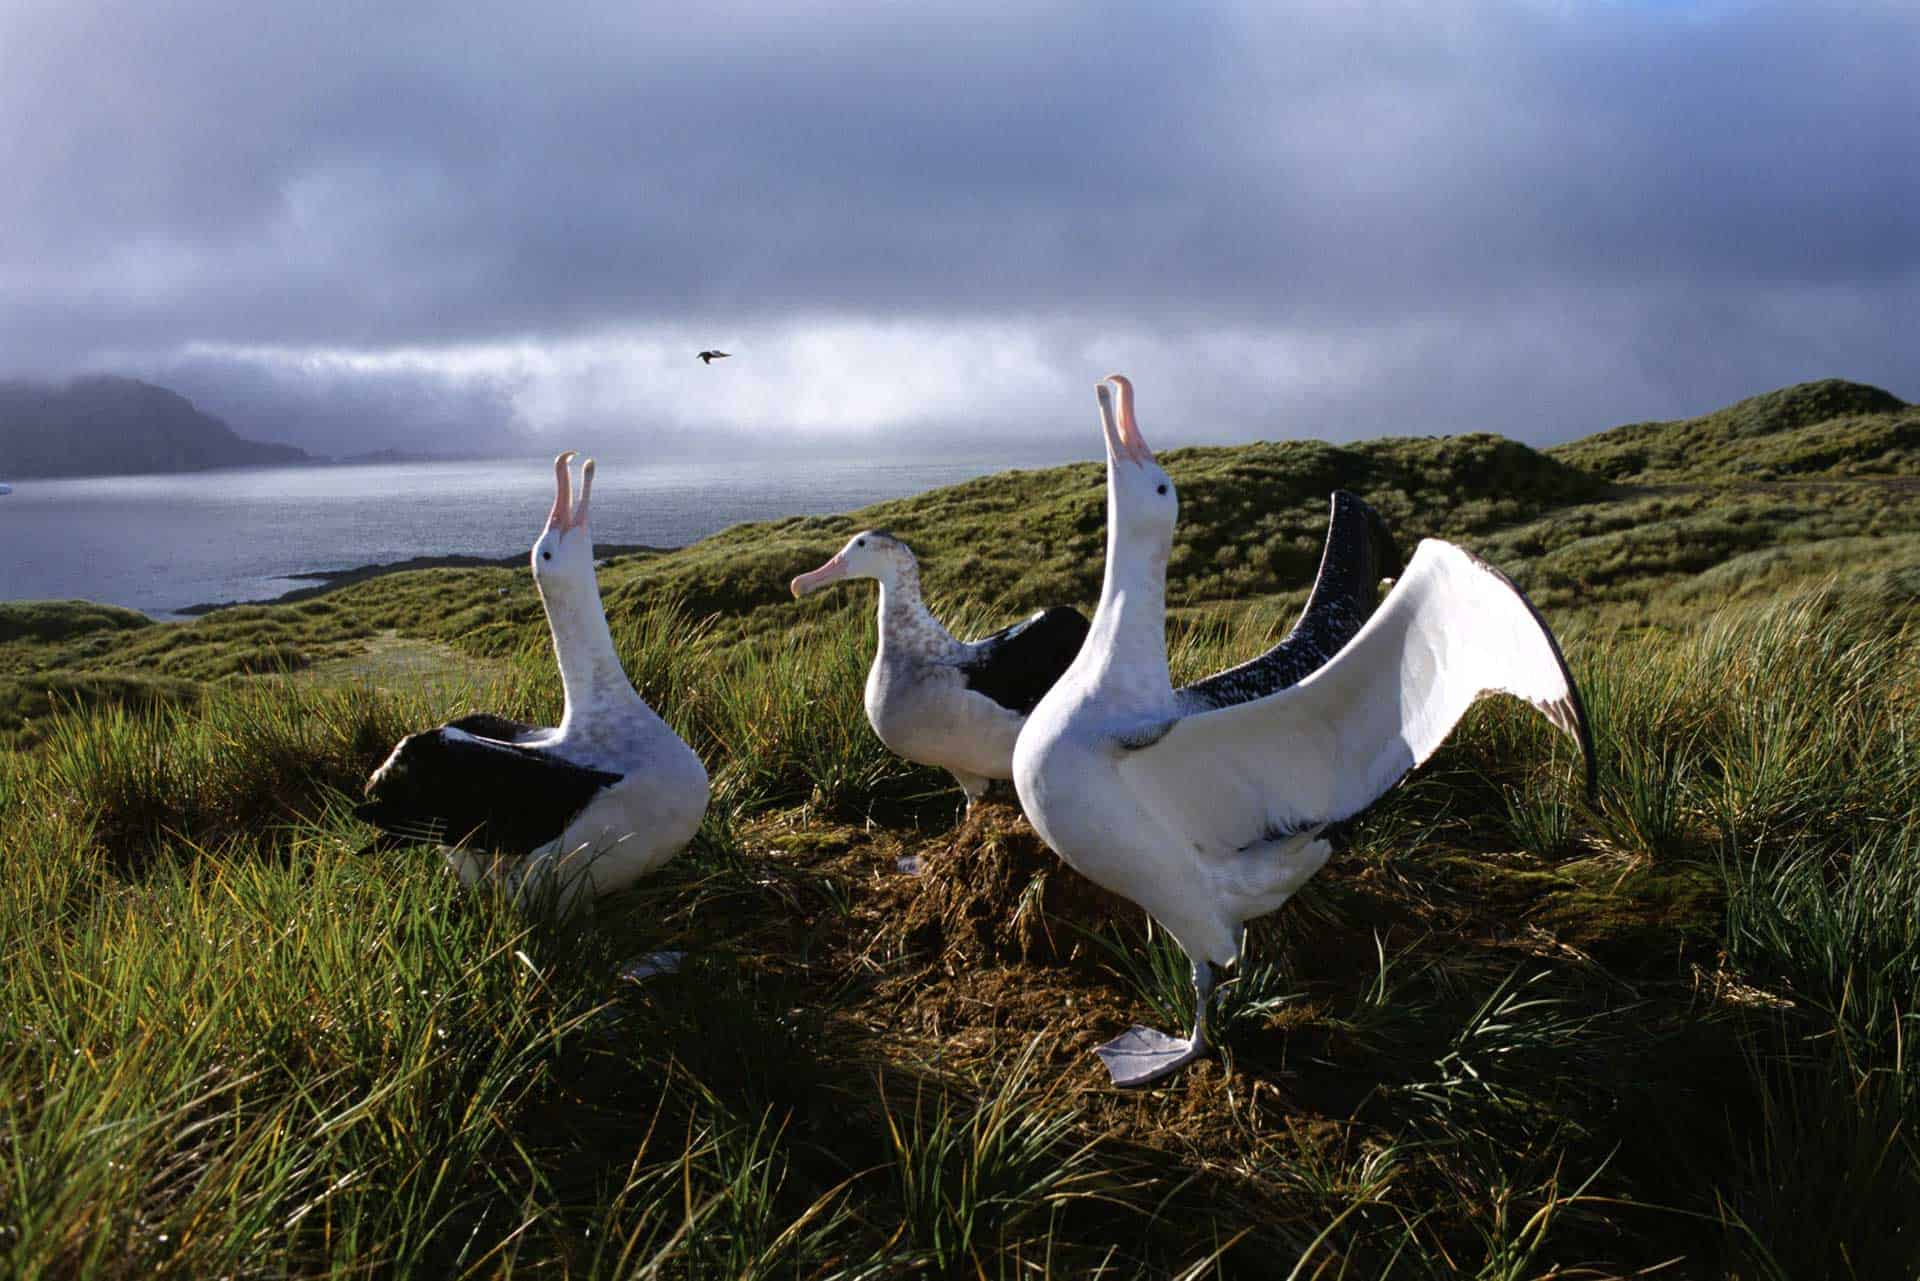 Wandering Albatross South Georgia